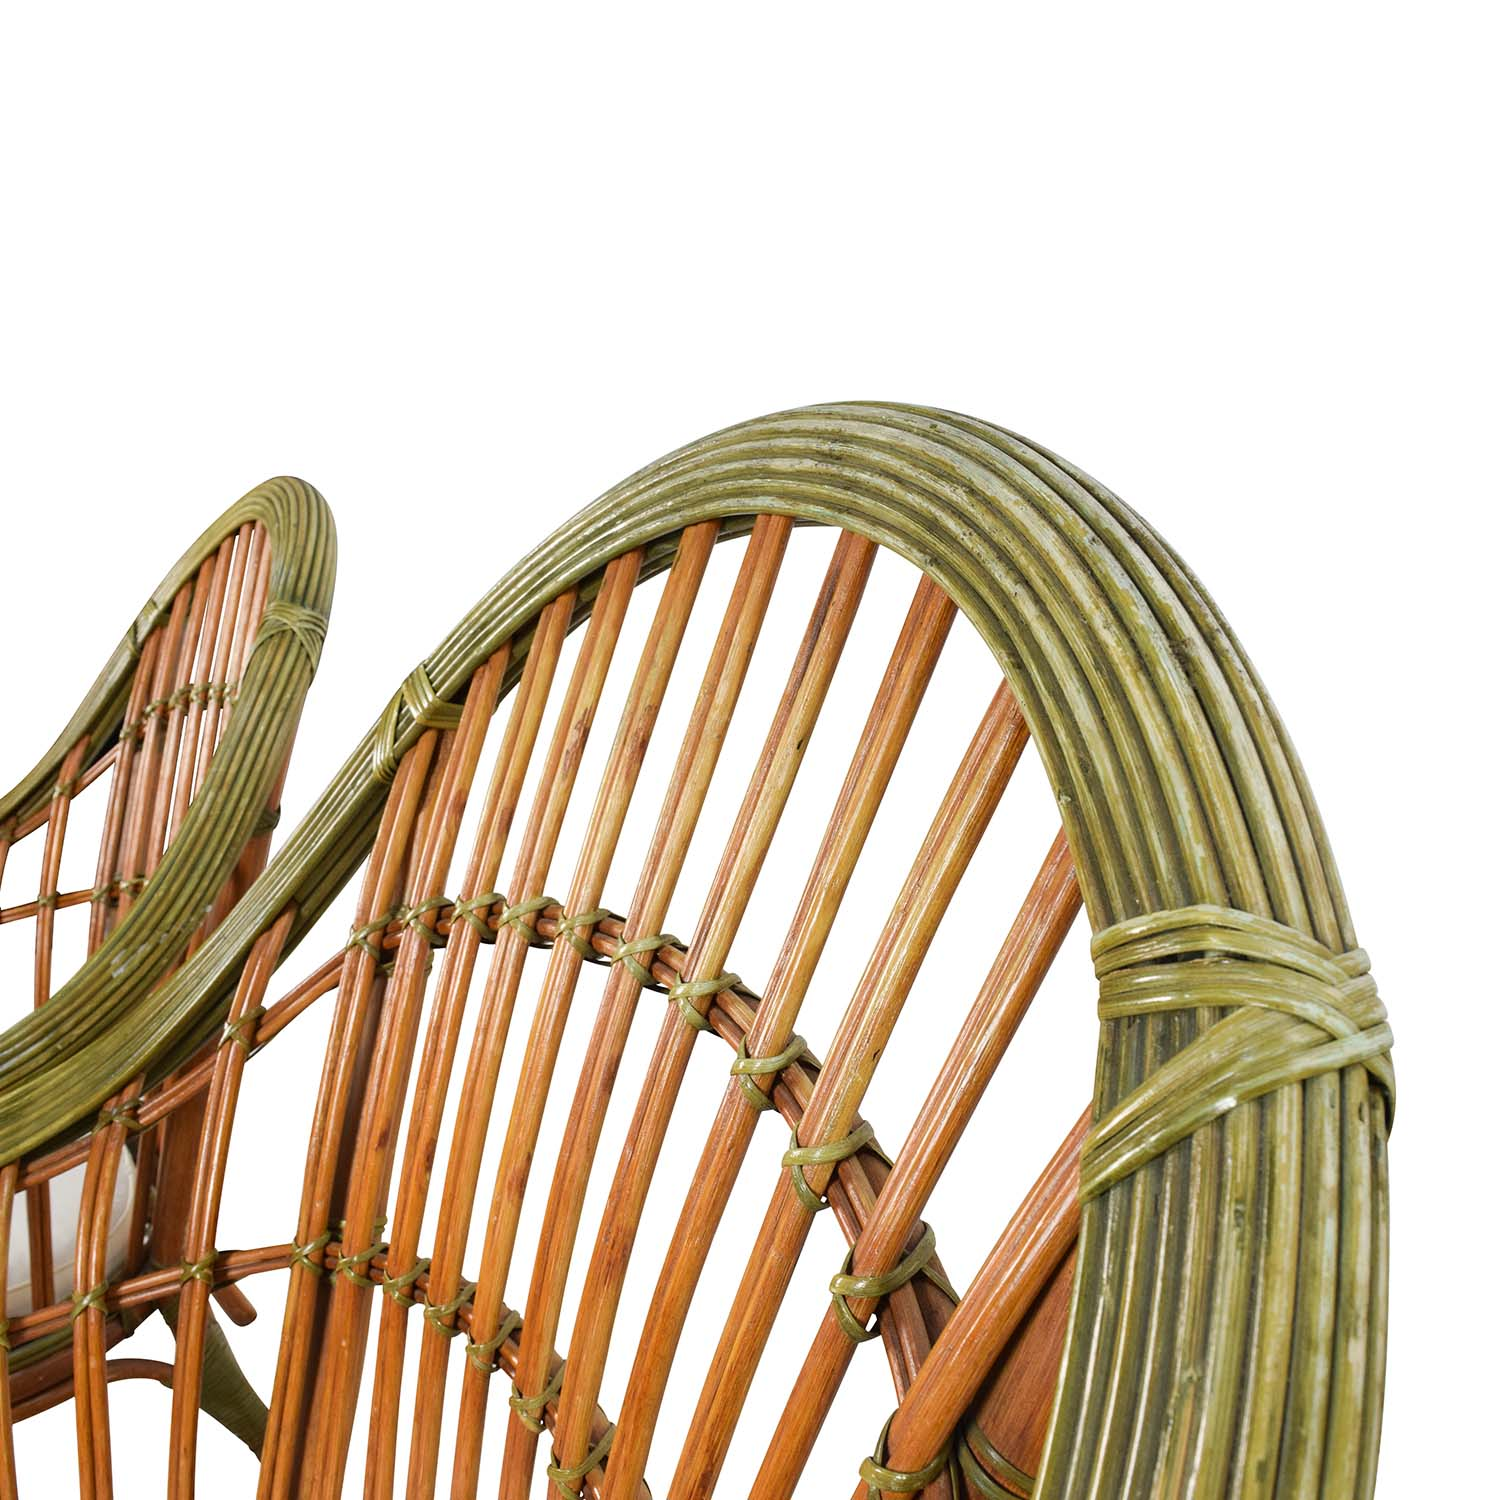 buy Pair Of Wicker Arm Chairs With Cushions Chairs